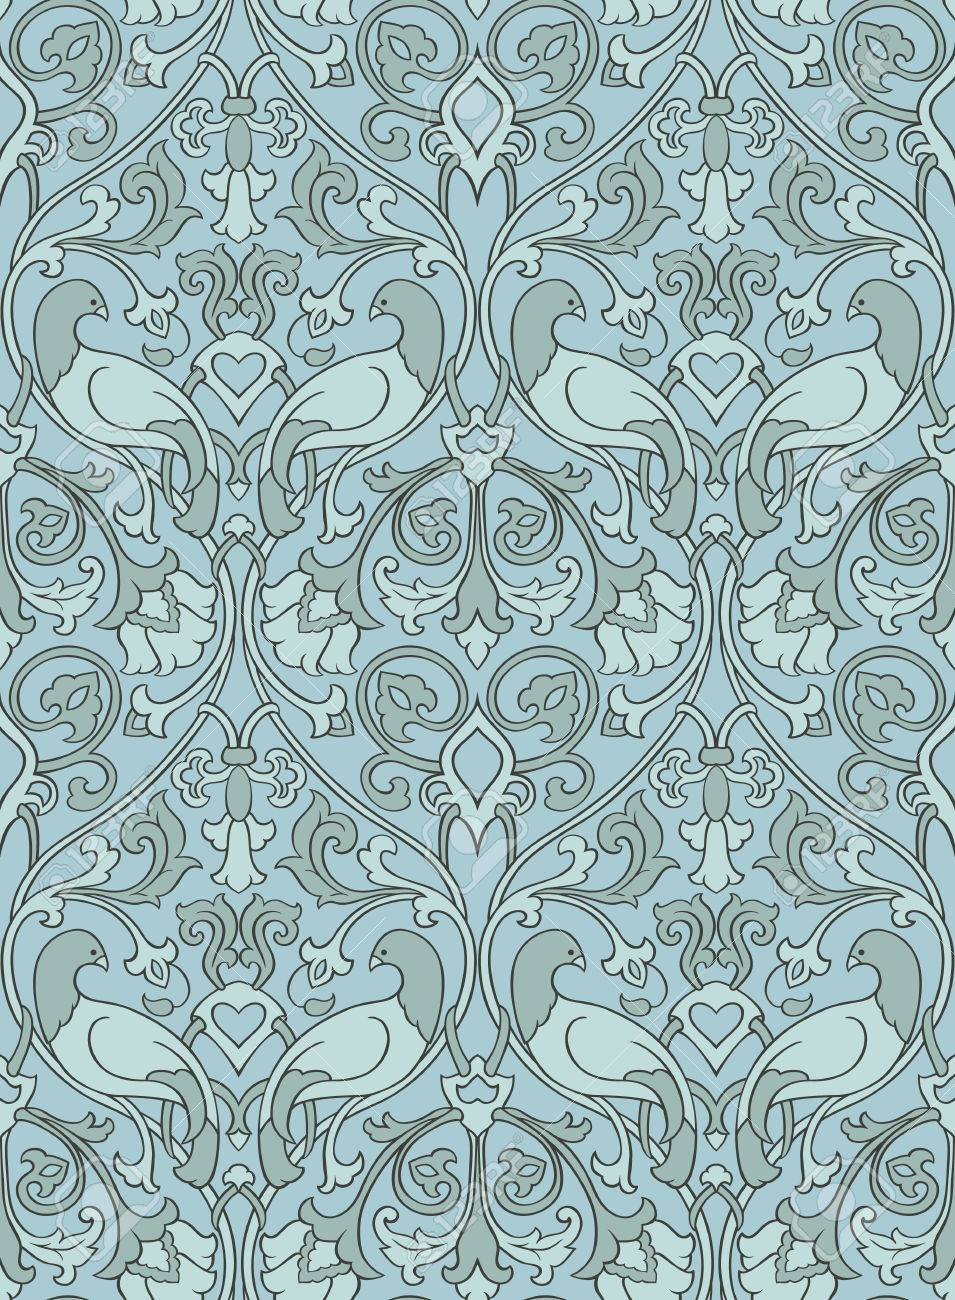 Blue And Gray Floral Pattern Seamless Filigree Ornament Stylized